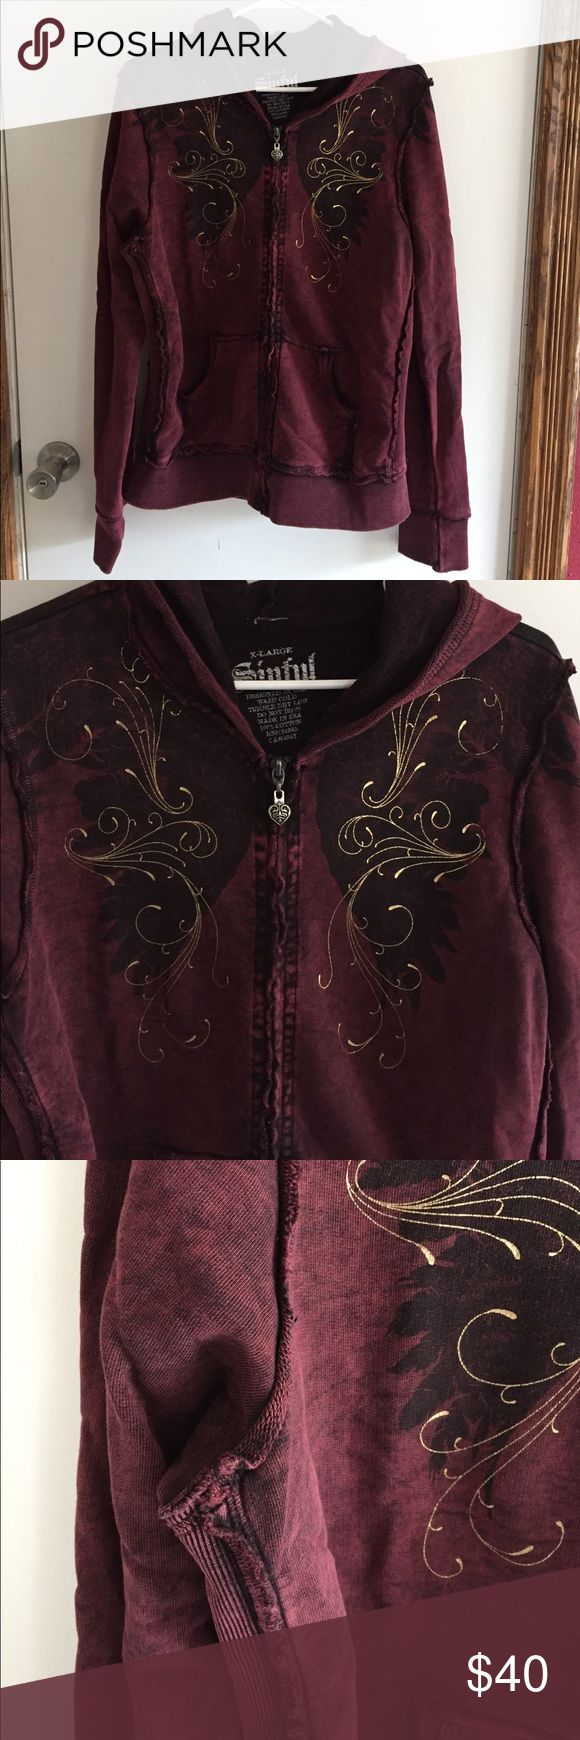 EUC Sinful Zip Up Hoodie XL Excellent condition! Raspberry colored hoodie with gold/black detail and the back has black wings with gold detail. Seams have a distressed look. Washed cold and hung to dry, smoke free home. Sinful Tops Sweatshirts & Hoodies